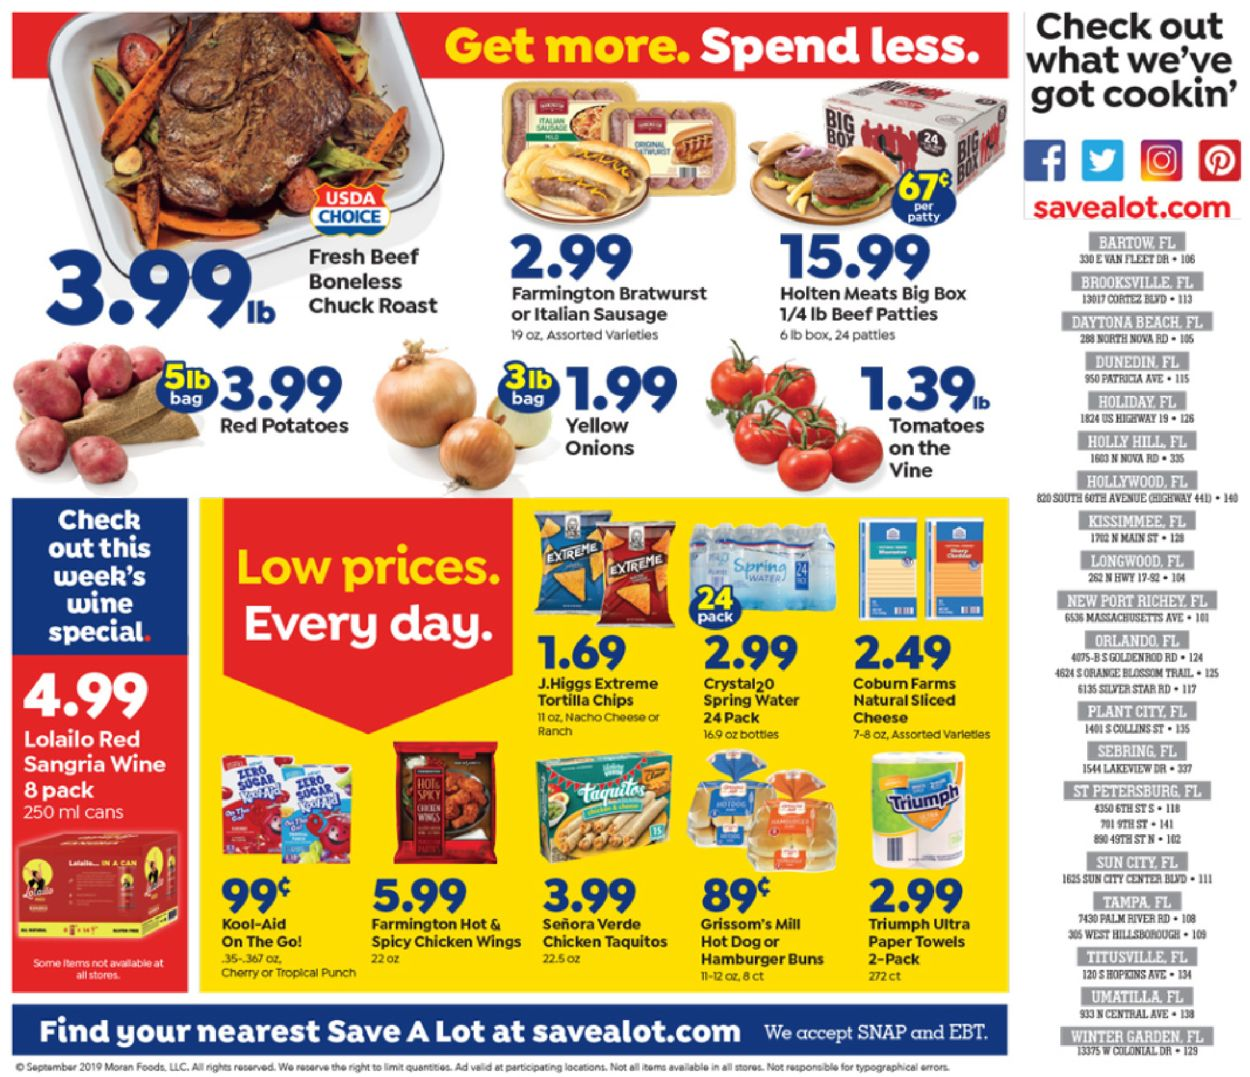 Save a Lot Current weekly ad 09/11 - 09/17/2019 [3] - weekly-ad-24.com